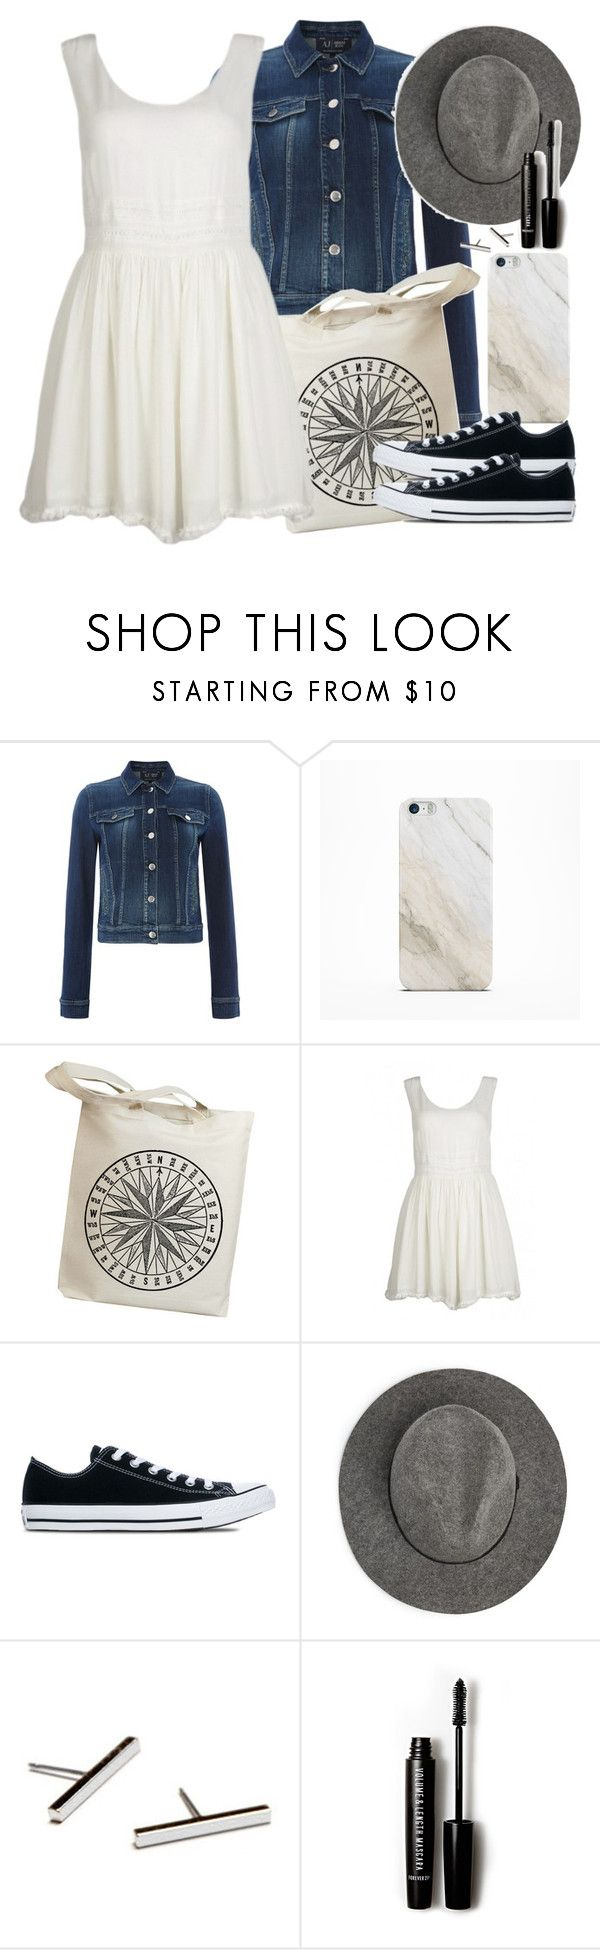 """""""Allison Inspired Outfit"""" by veterization ❤ liked on Polyvore featuring Armani Jeans, Samsung, Converse, MANGO and Forever 21"""